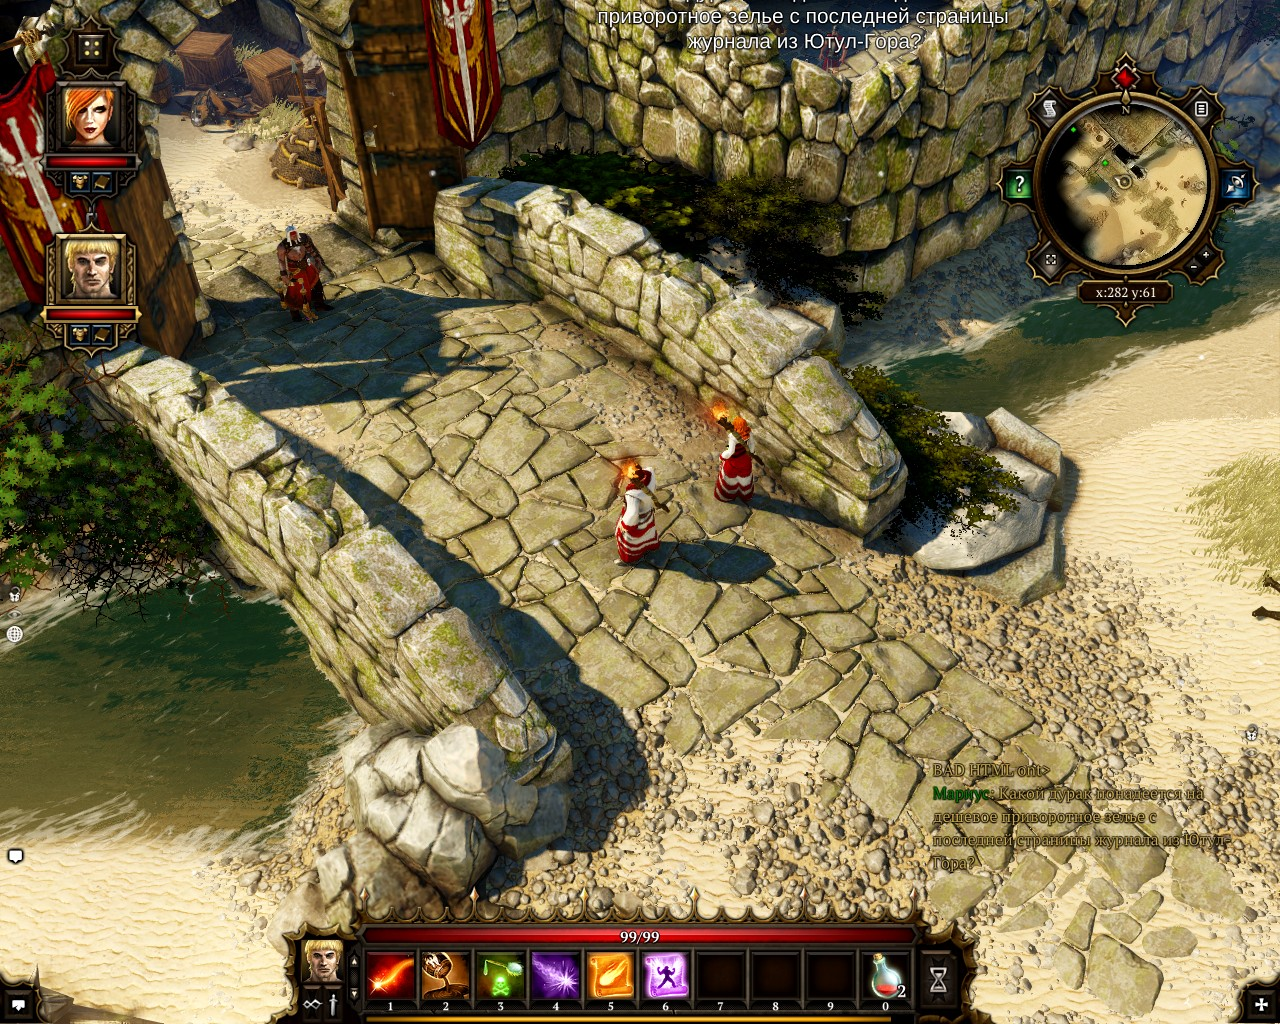 Divinity: Original Sin - Enhanced Edition [v 2.0.103.346] (2015) PC | RePack от xatab - Скриншот 2